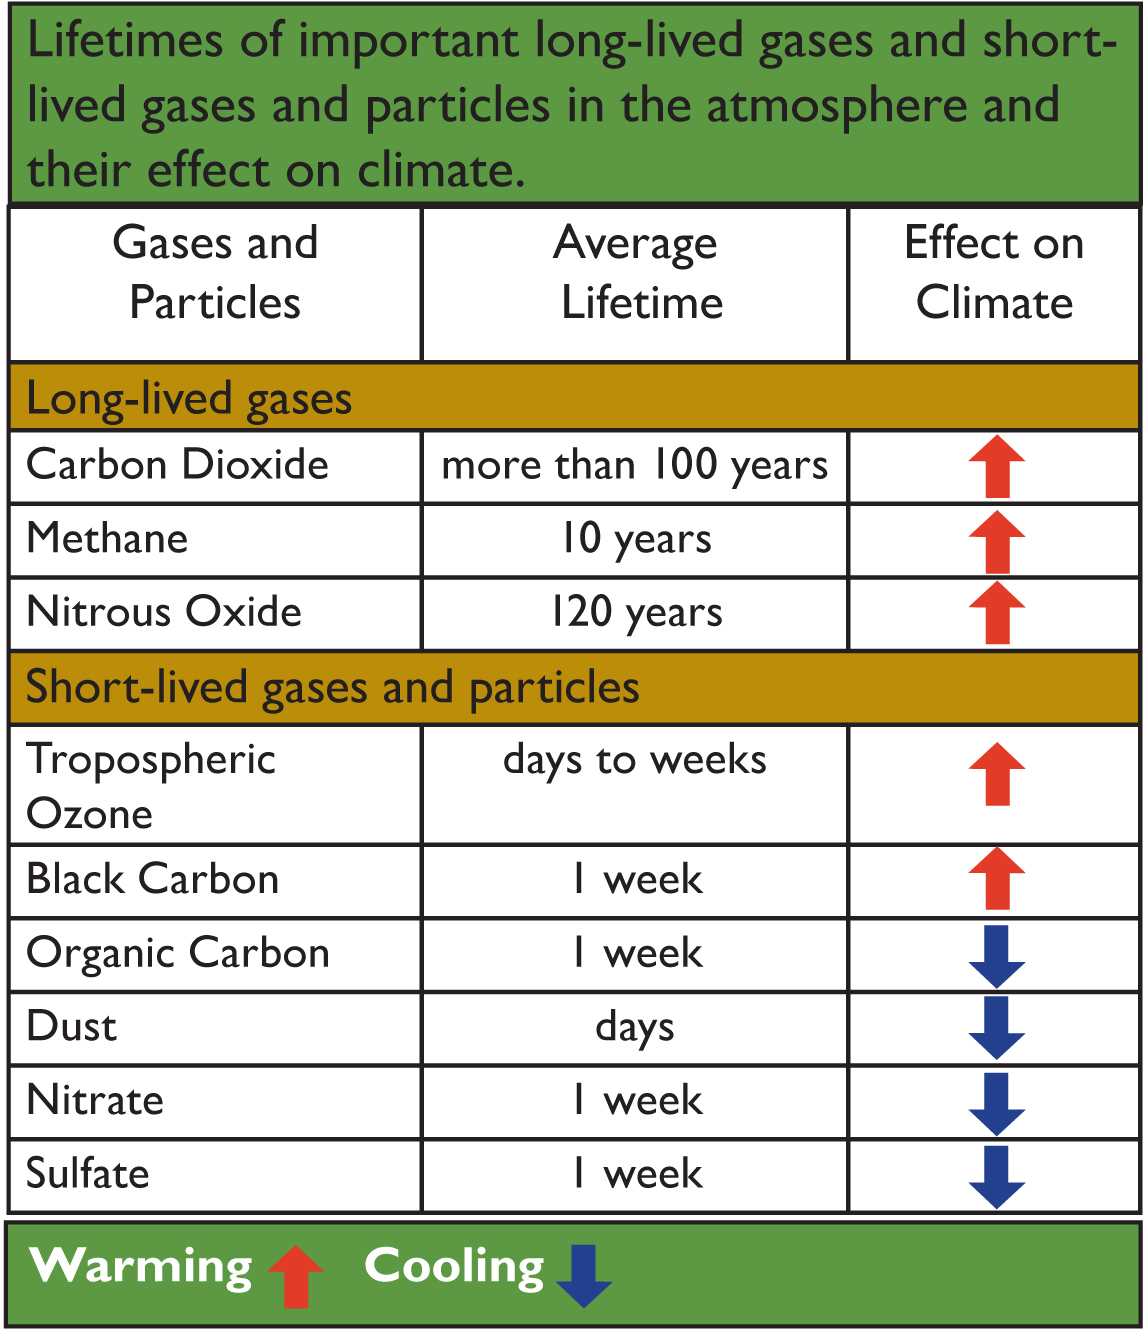 Lifetimes of important Long-lived gasses and Short-live gases and particles in the atmosphere and their effect on climate